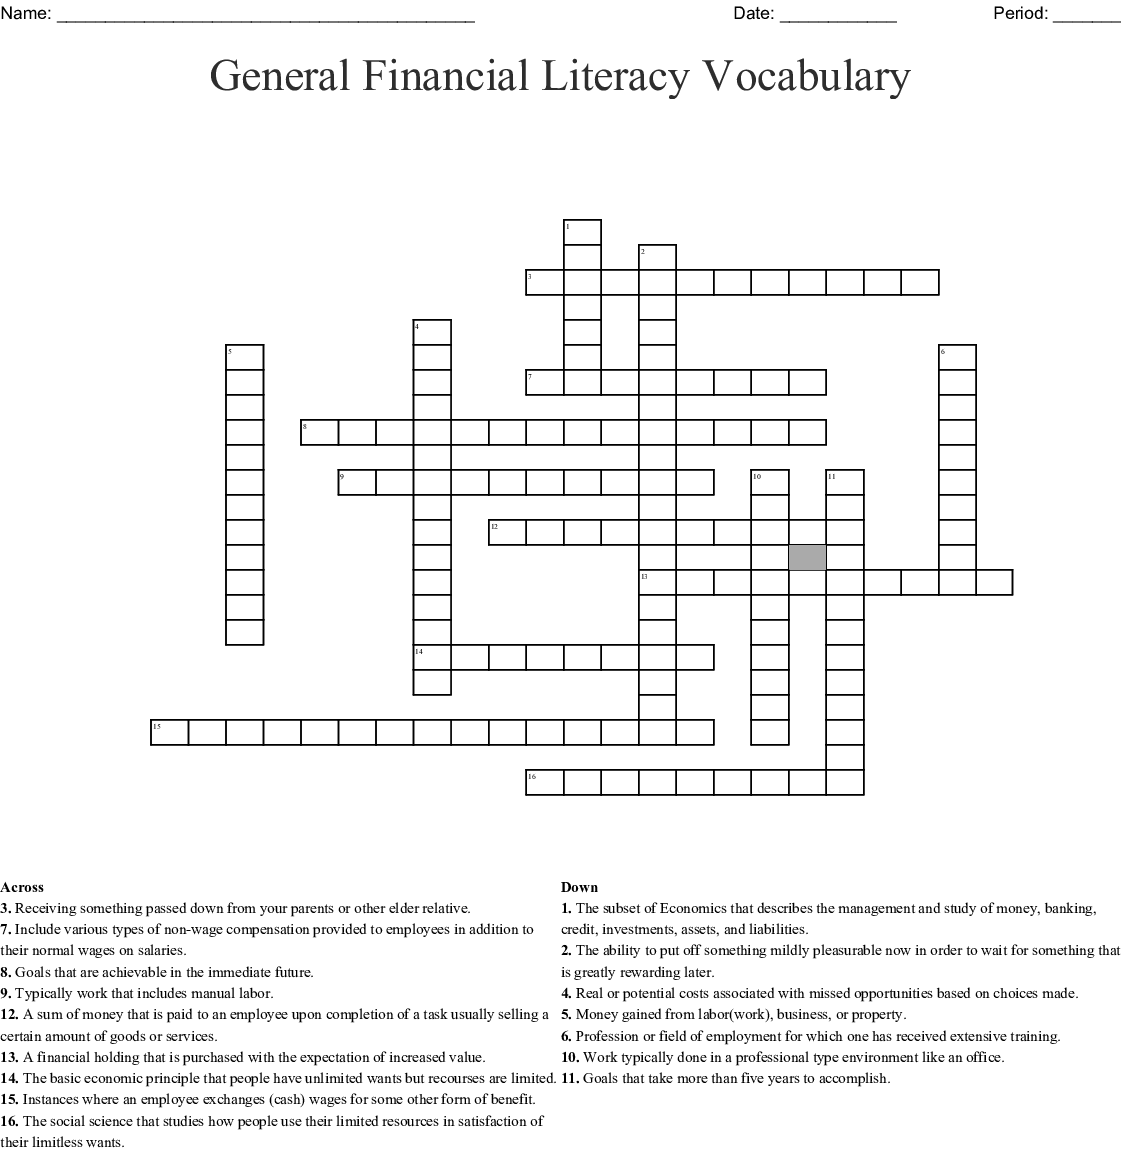 General Financial Literacy Vocabulary Crossword